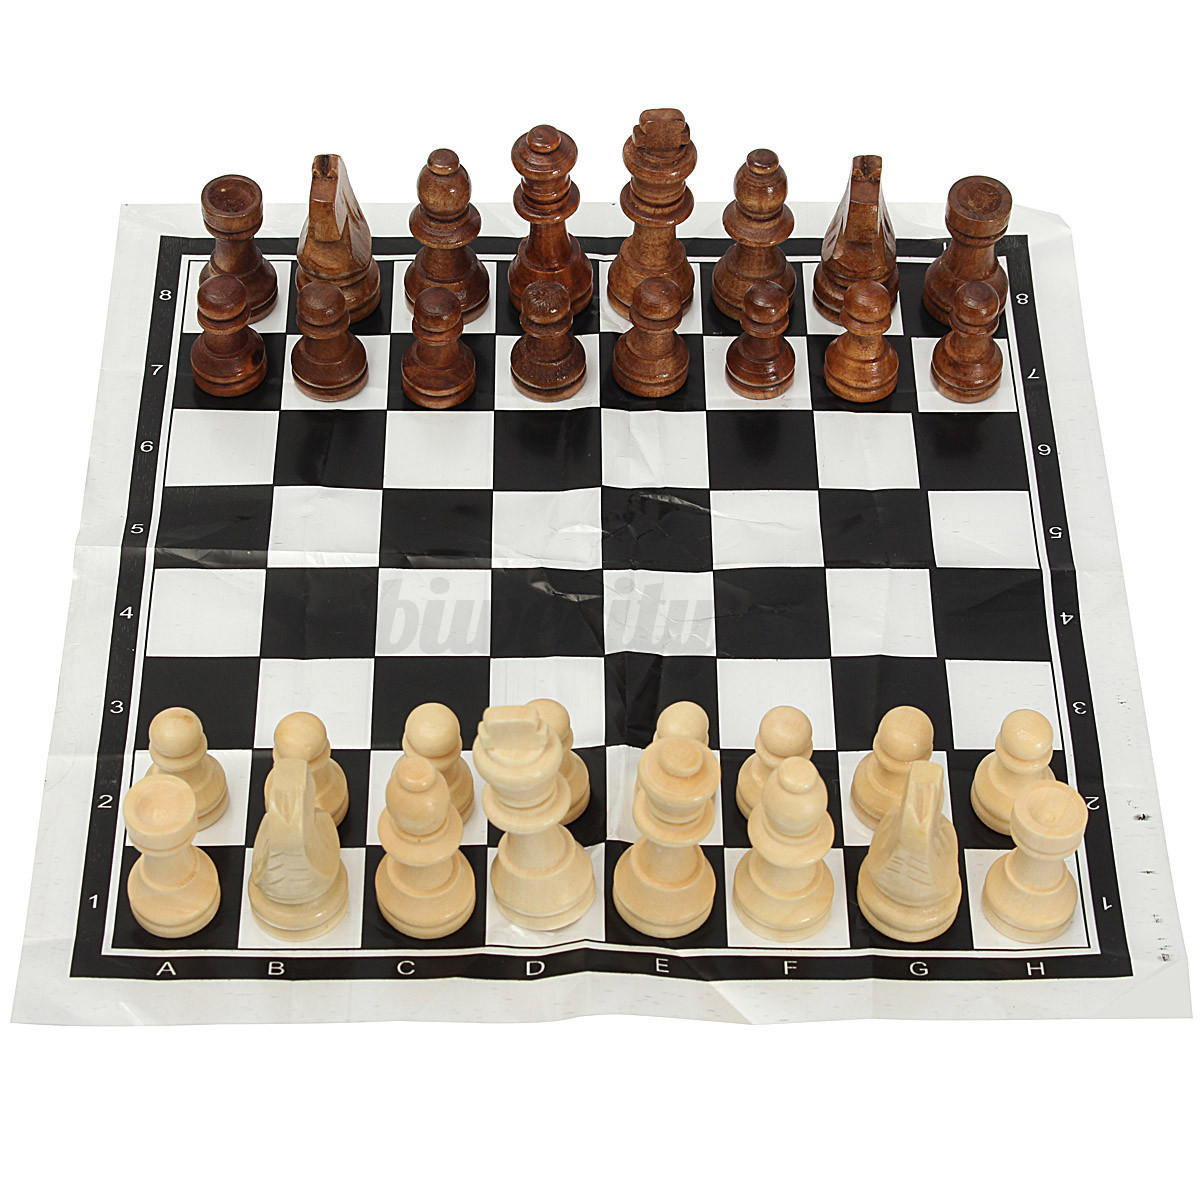 32tlg schachfiguren schach schachspiel holz chess board. Black Bedroom Furniture Sets. Home Design Ideas